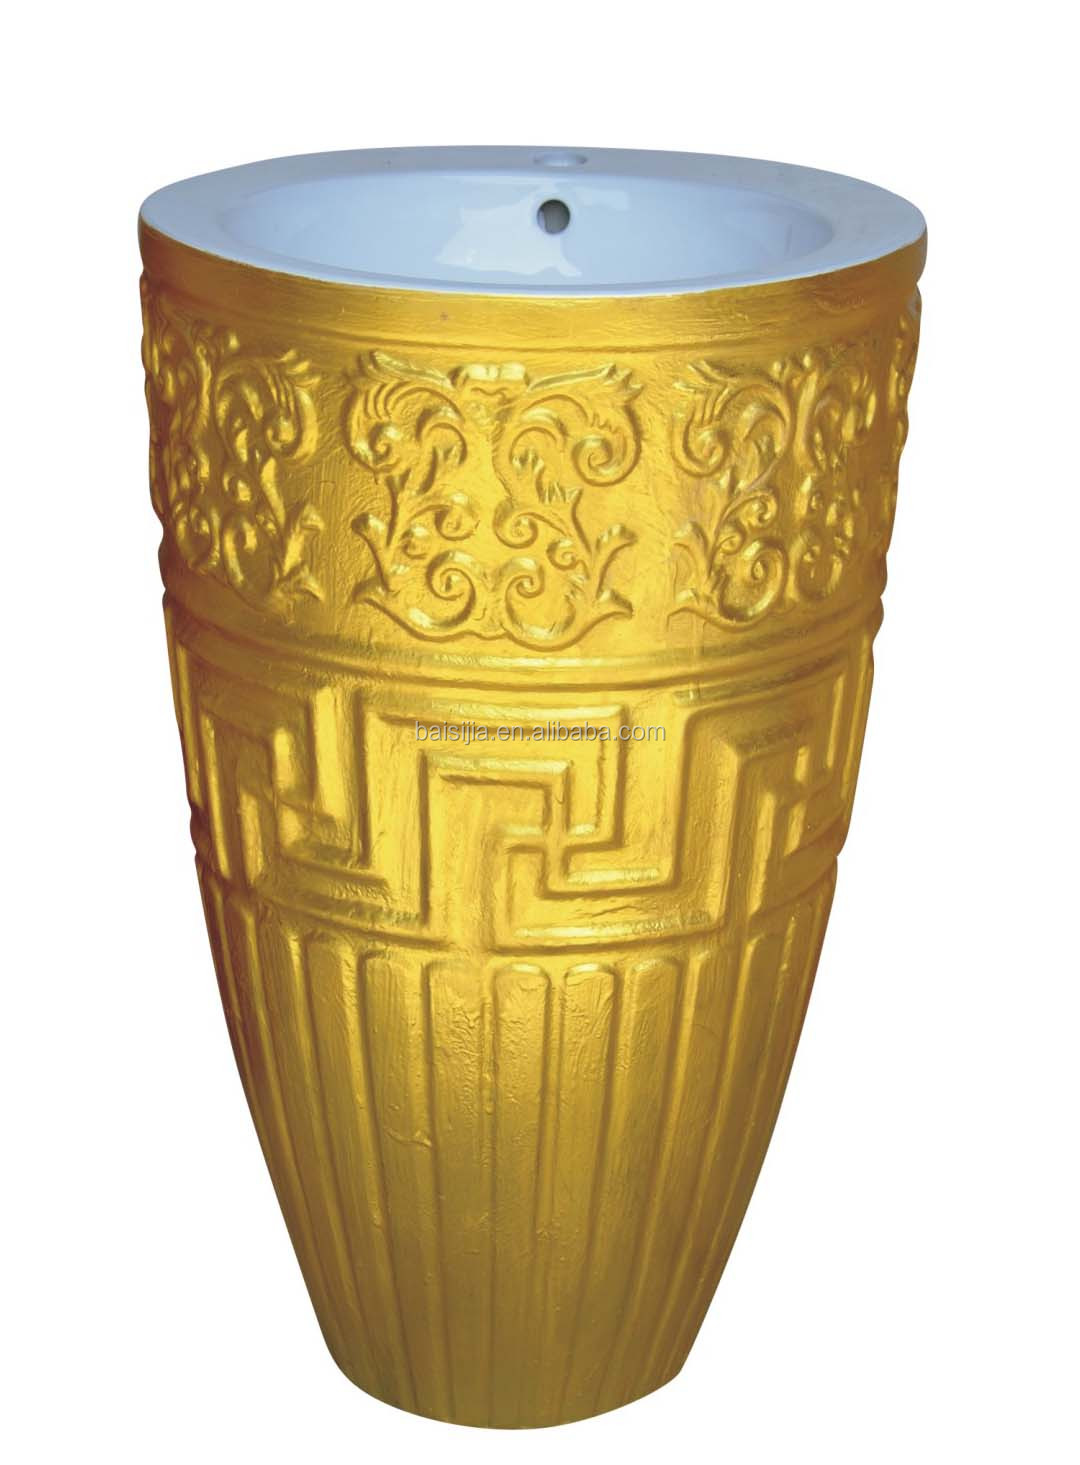 Gold color one piece floor standing pedestal basin/wash basin(BSJ-B165)